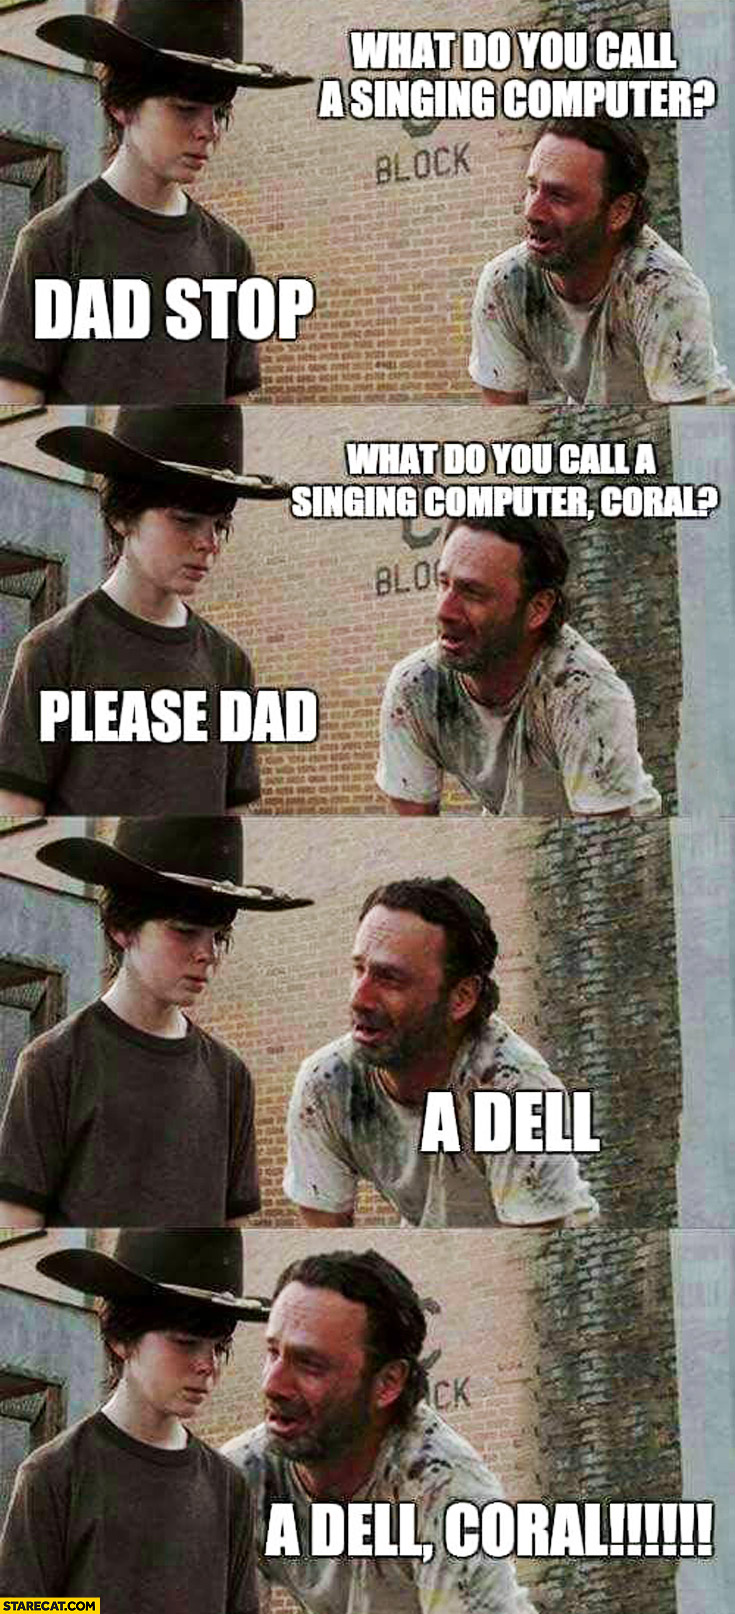 What do you call singing computer? A Dell Coral meme